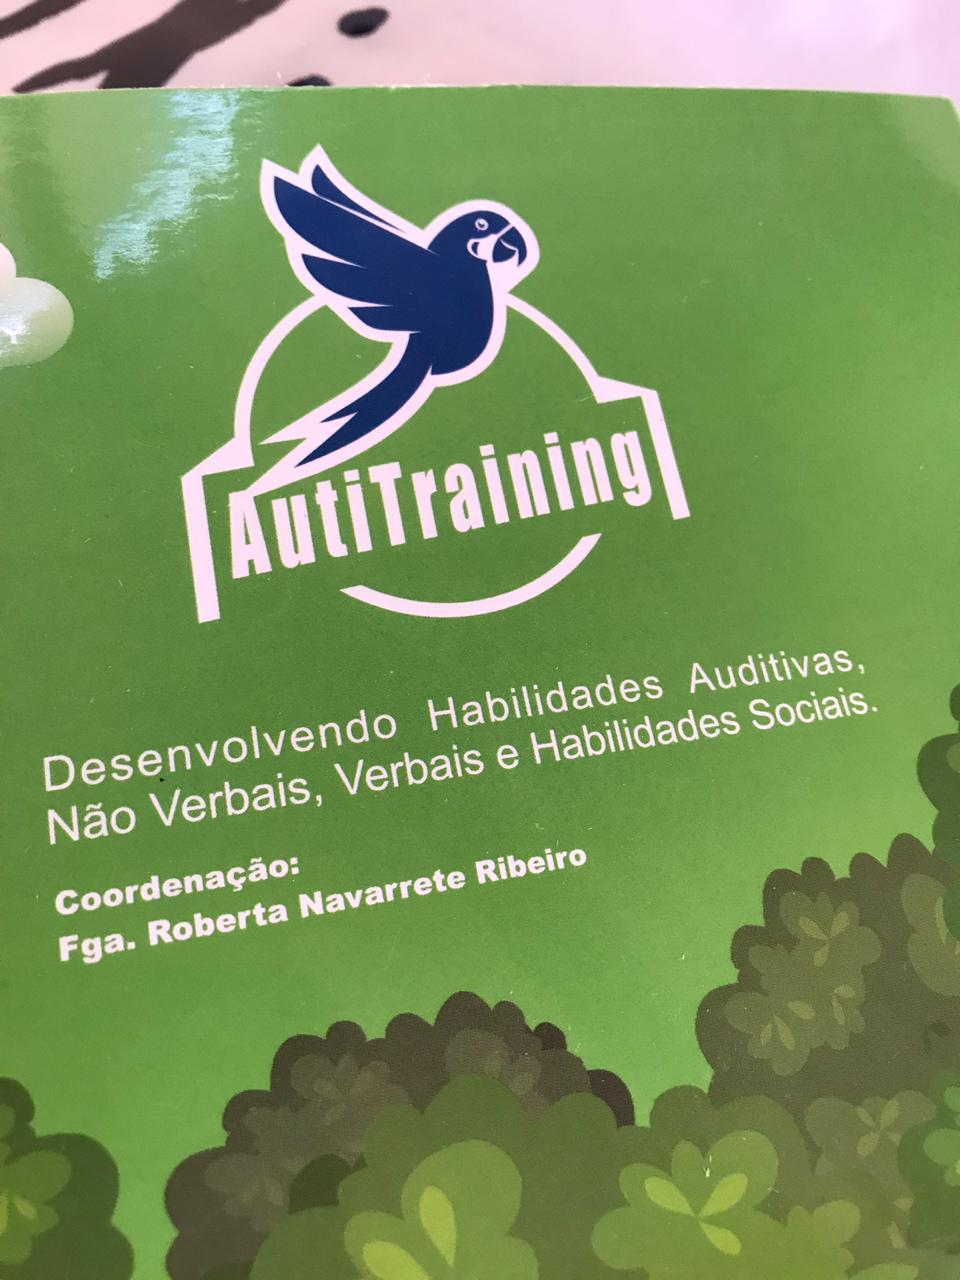 Auti Training